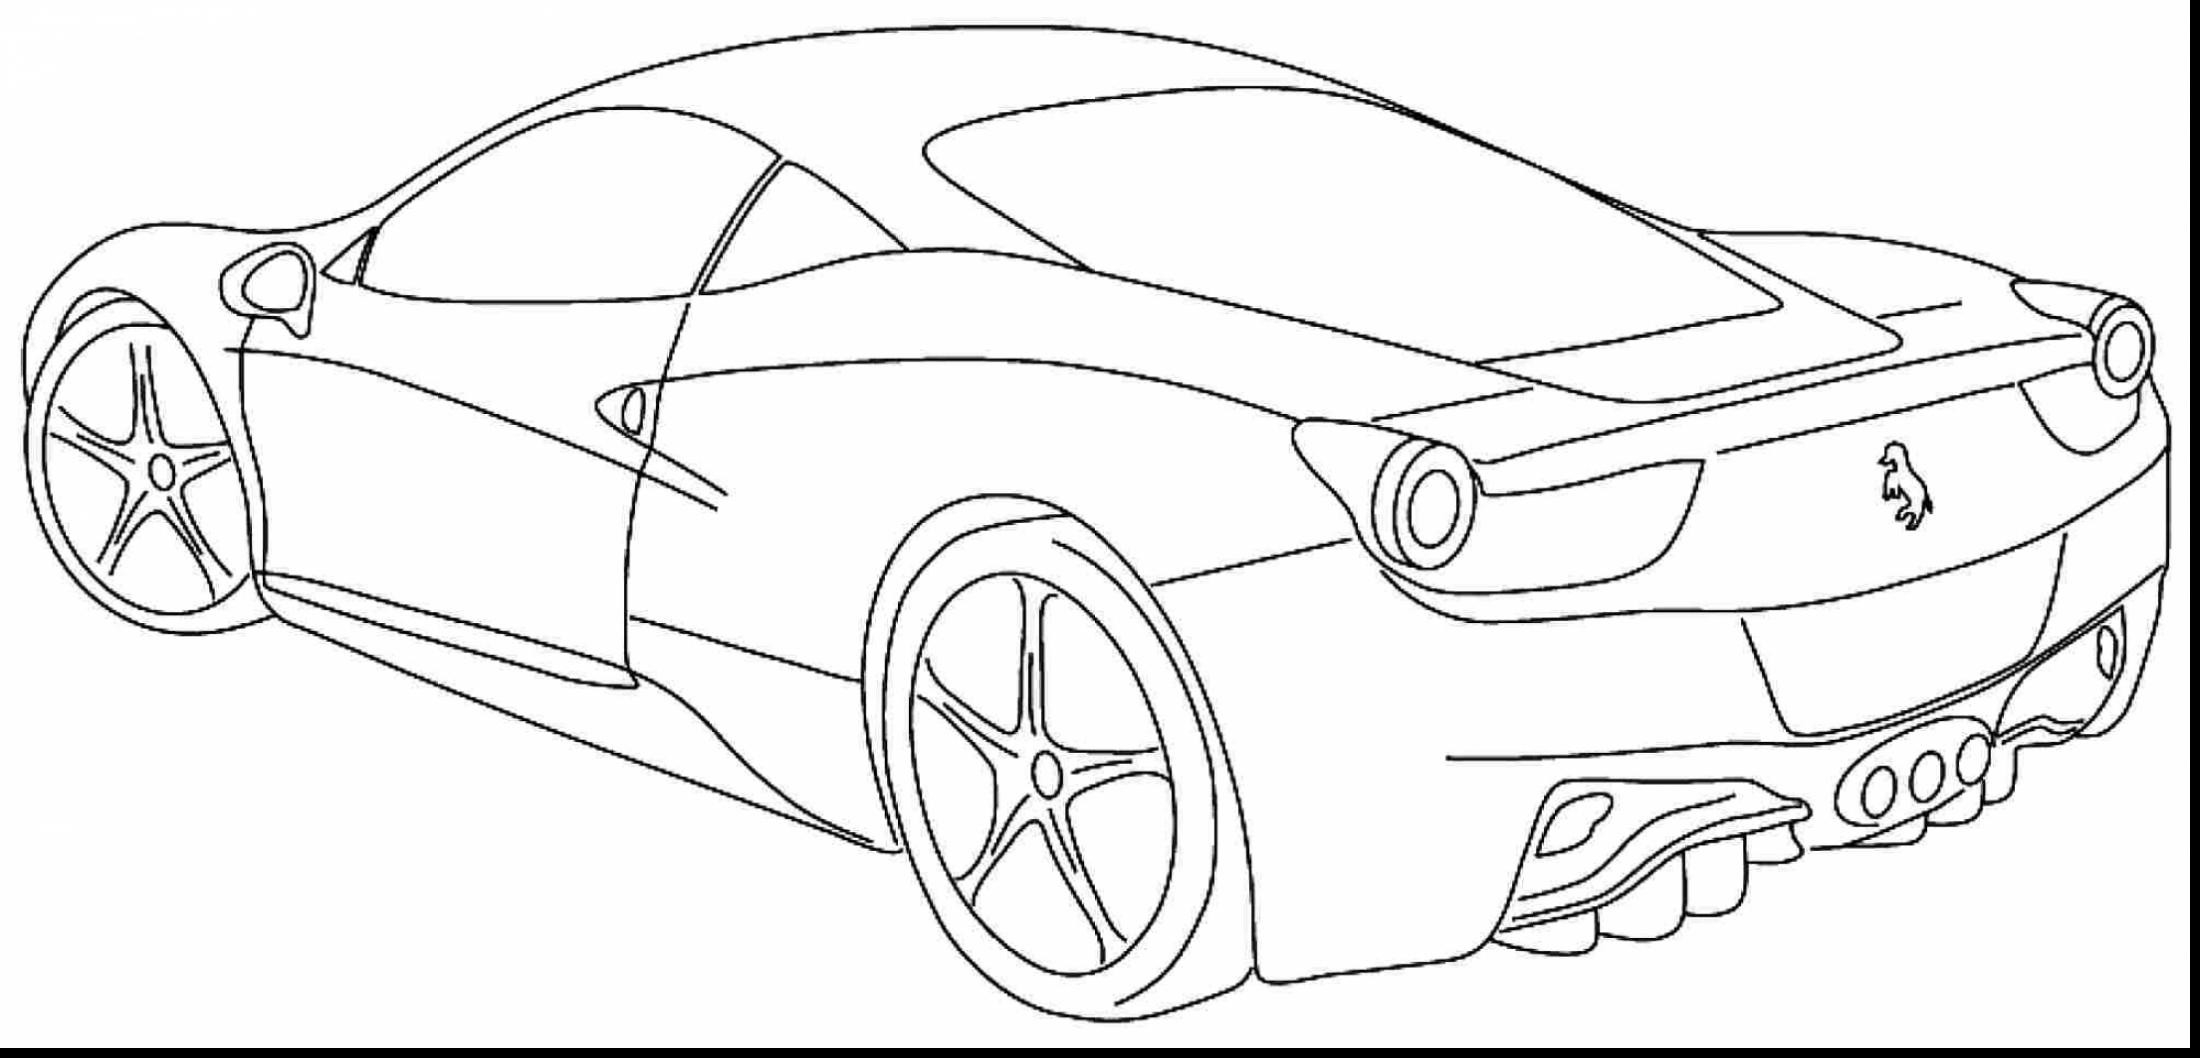 Supercar Coloring Pages at GetDrawings.com | Free for personal use ...